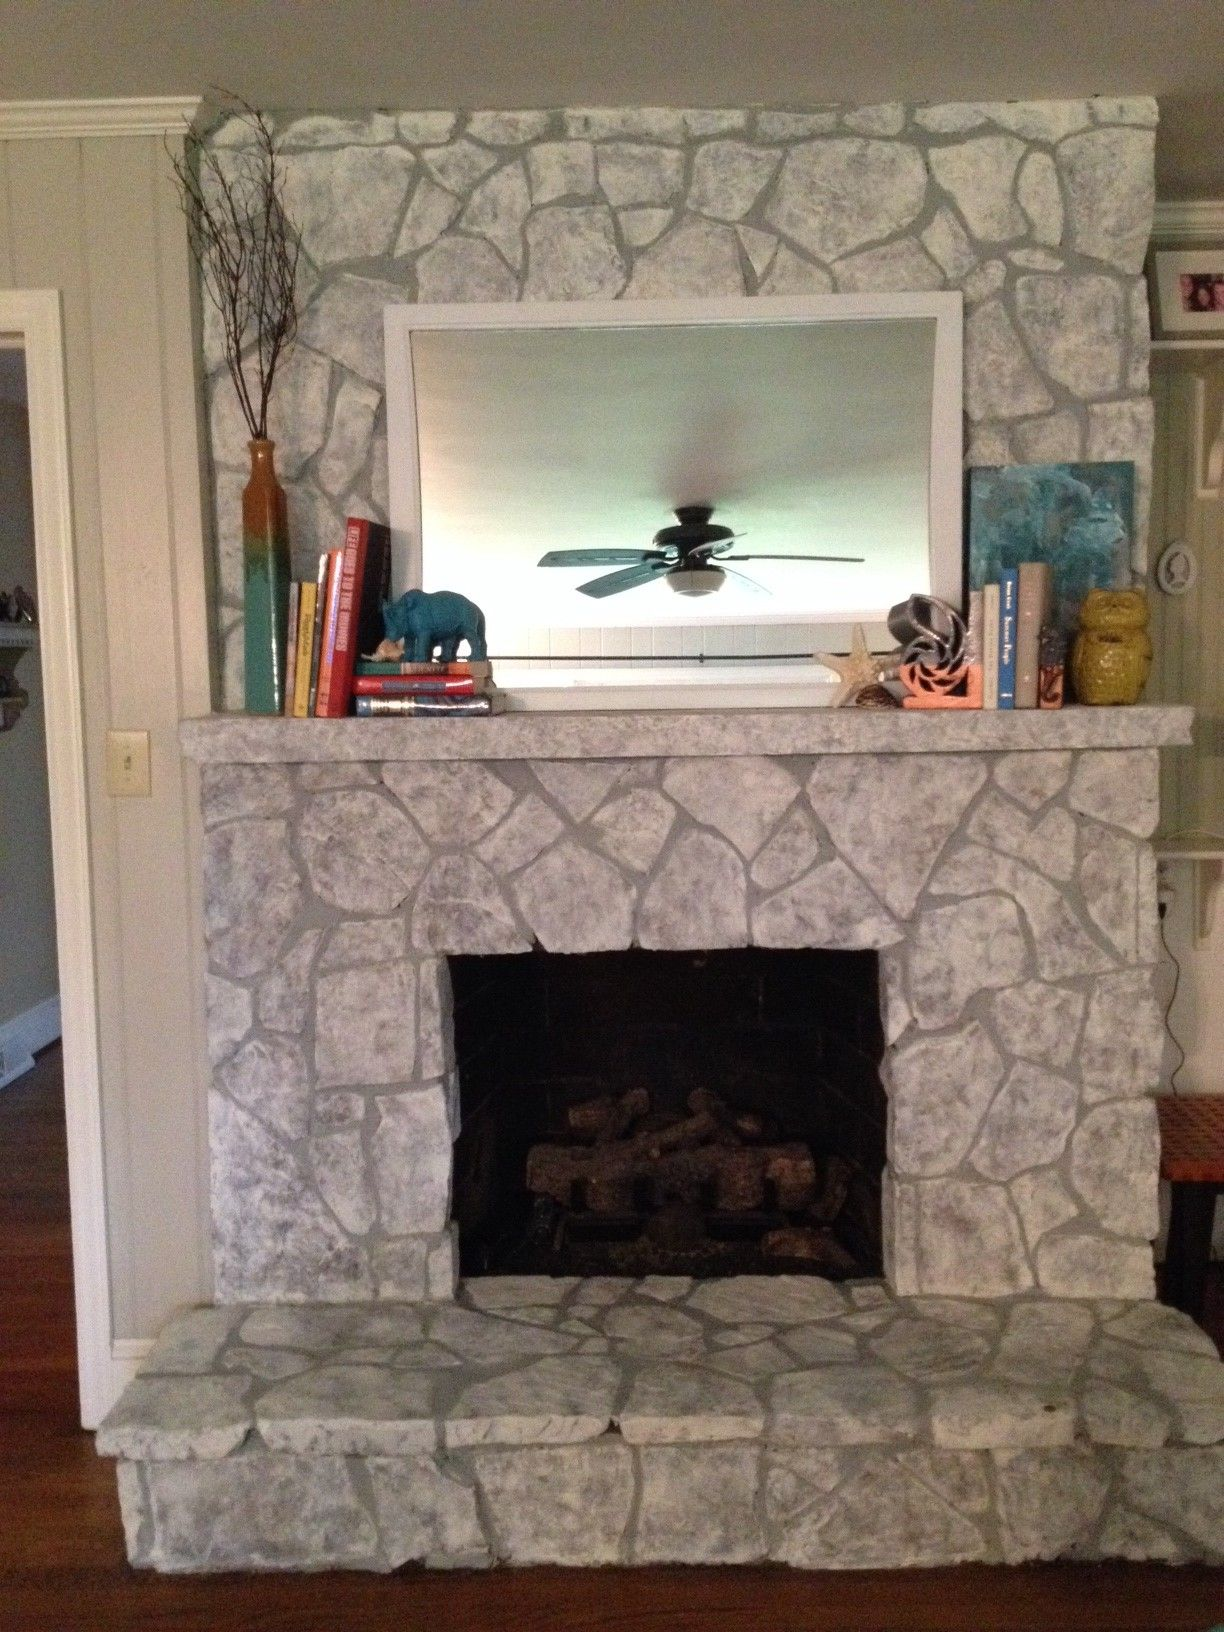 Painting A Stone Fireplace Nally I Did It